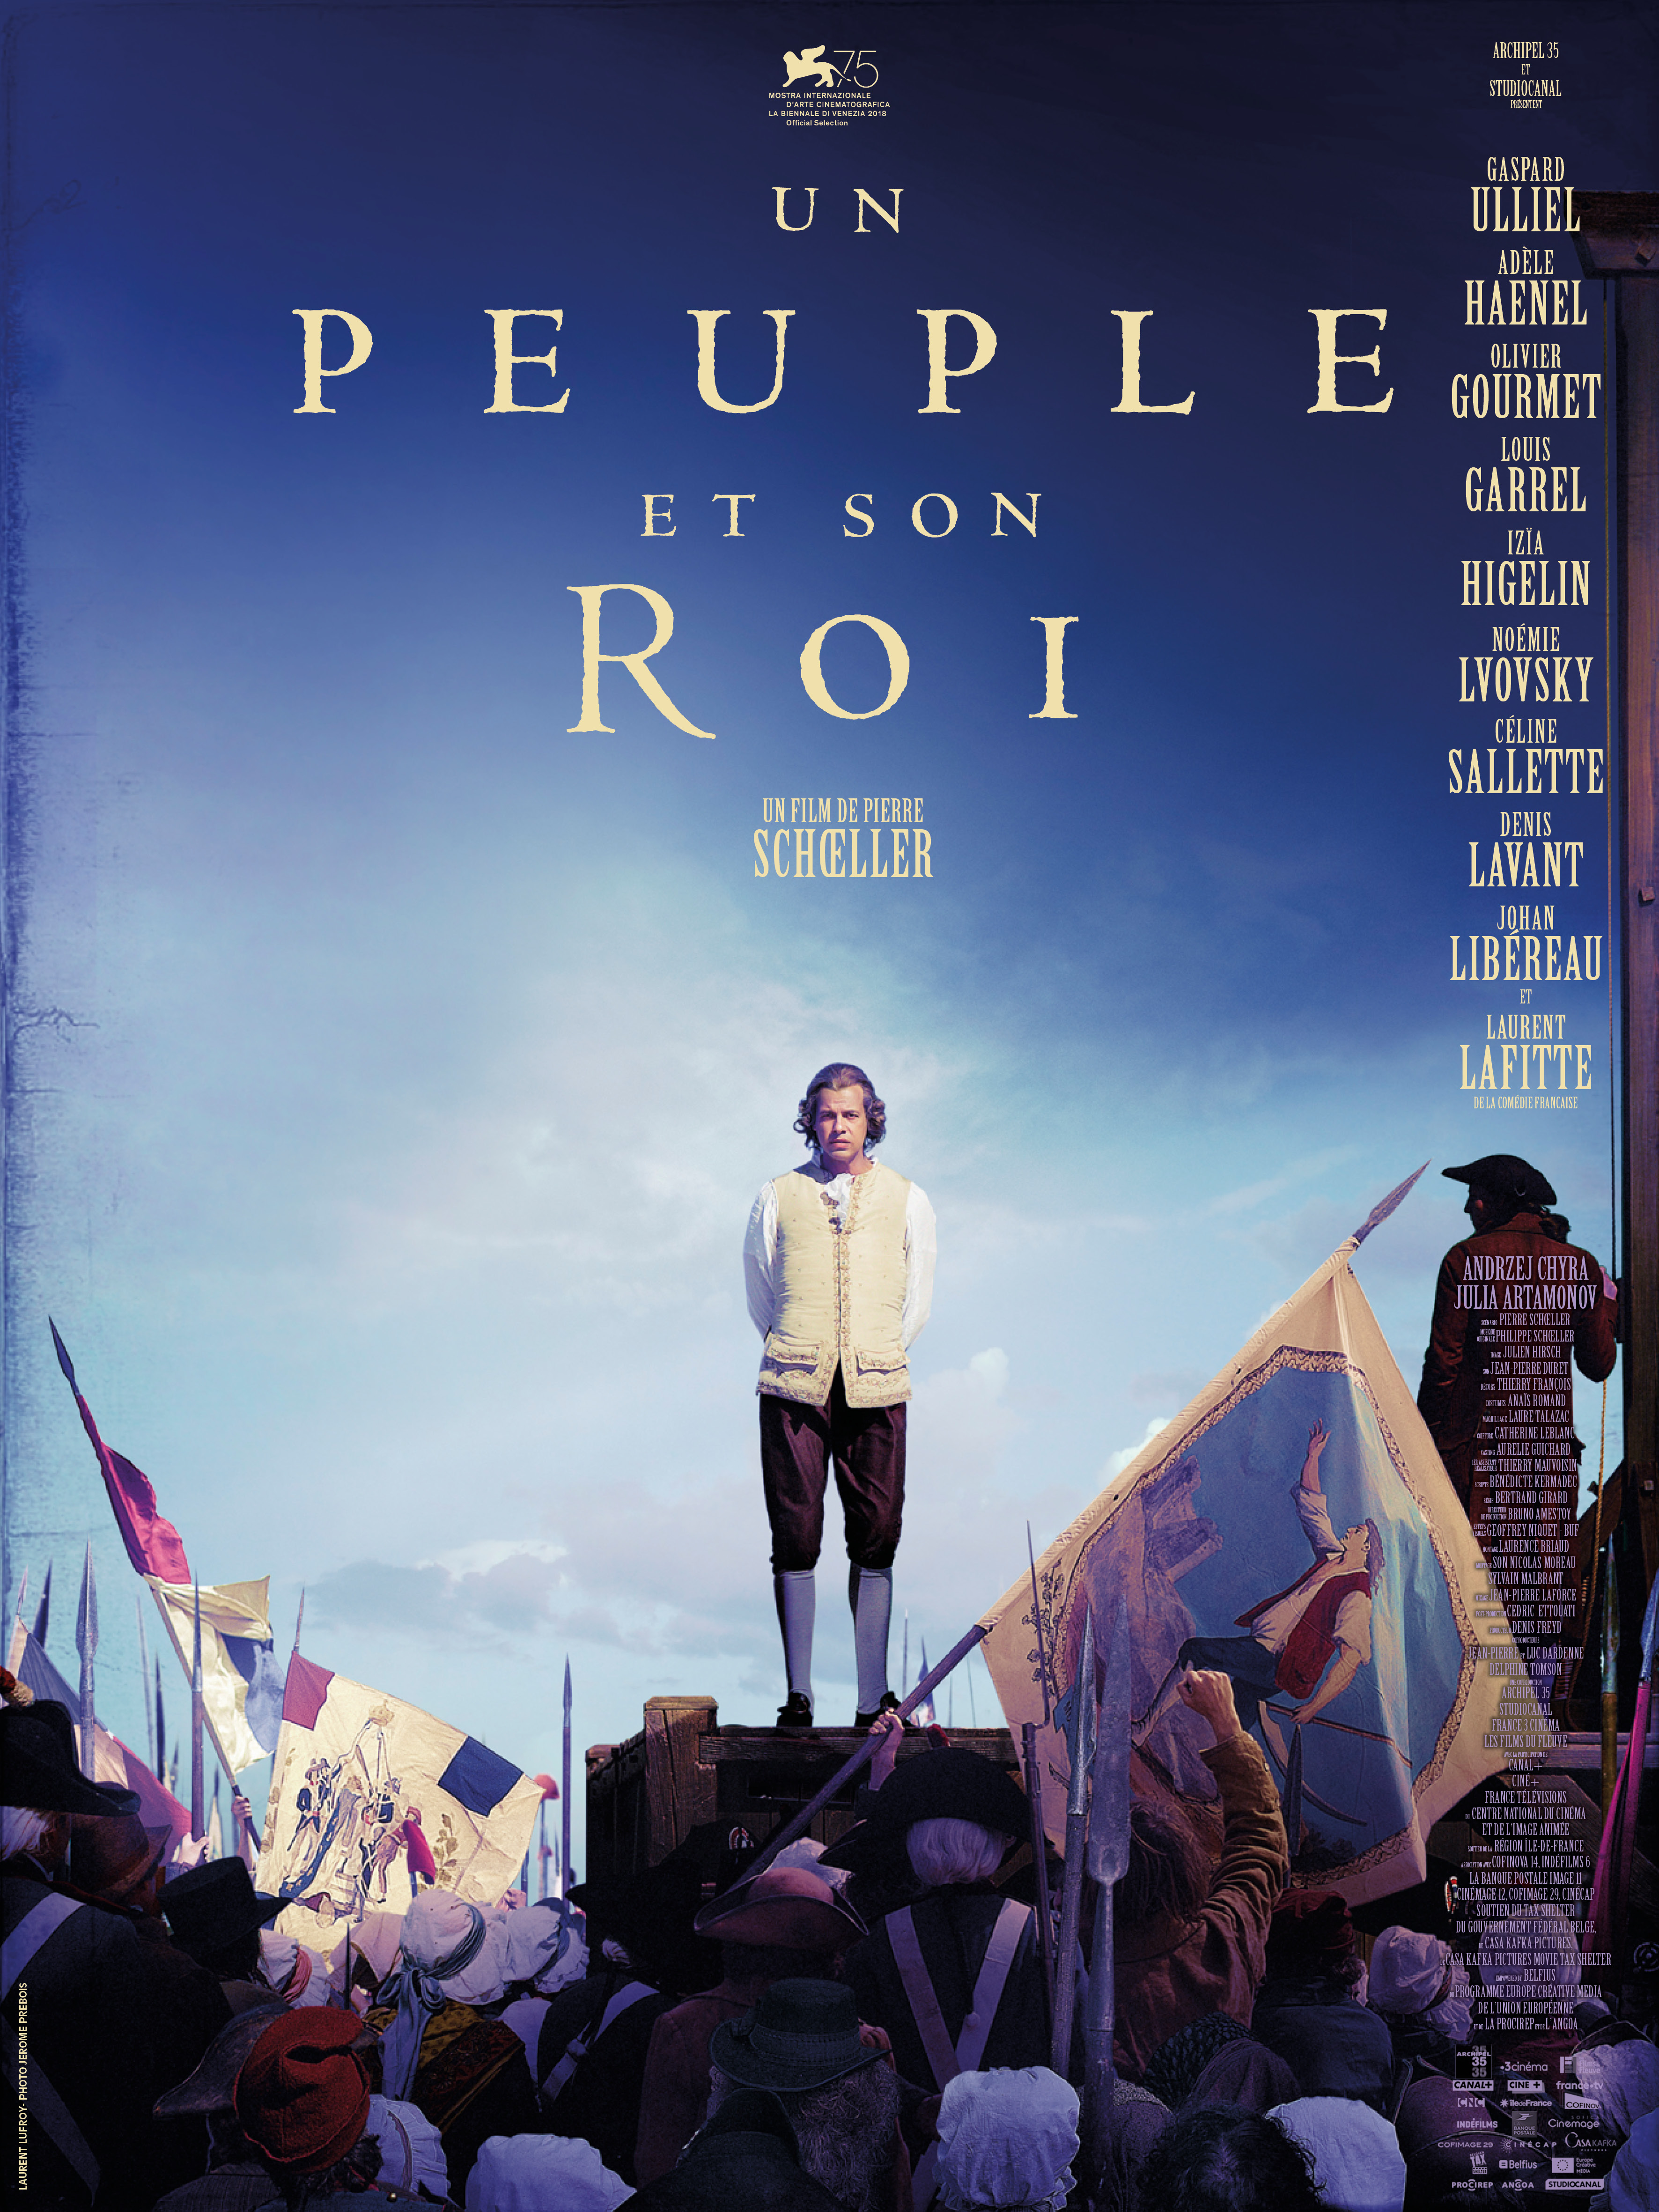 Un peuple et son roi postprod eclair cinema movie poster